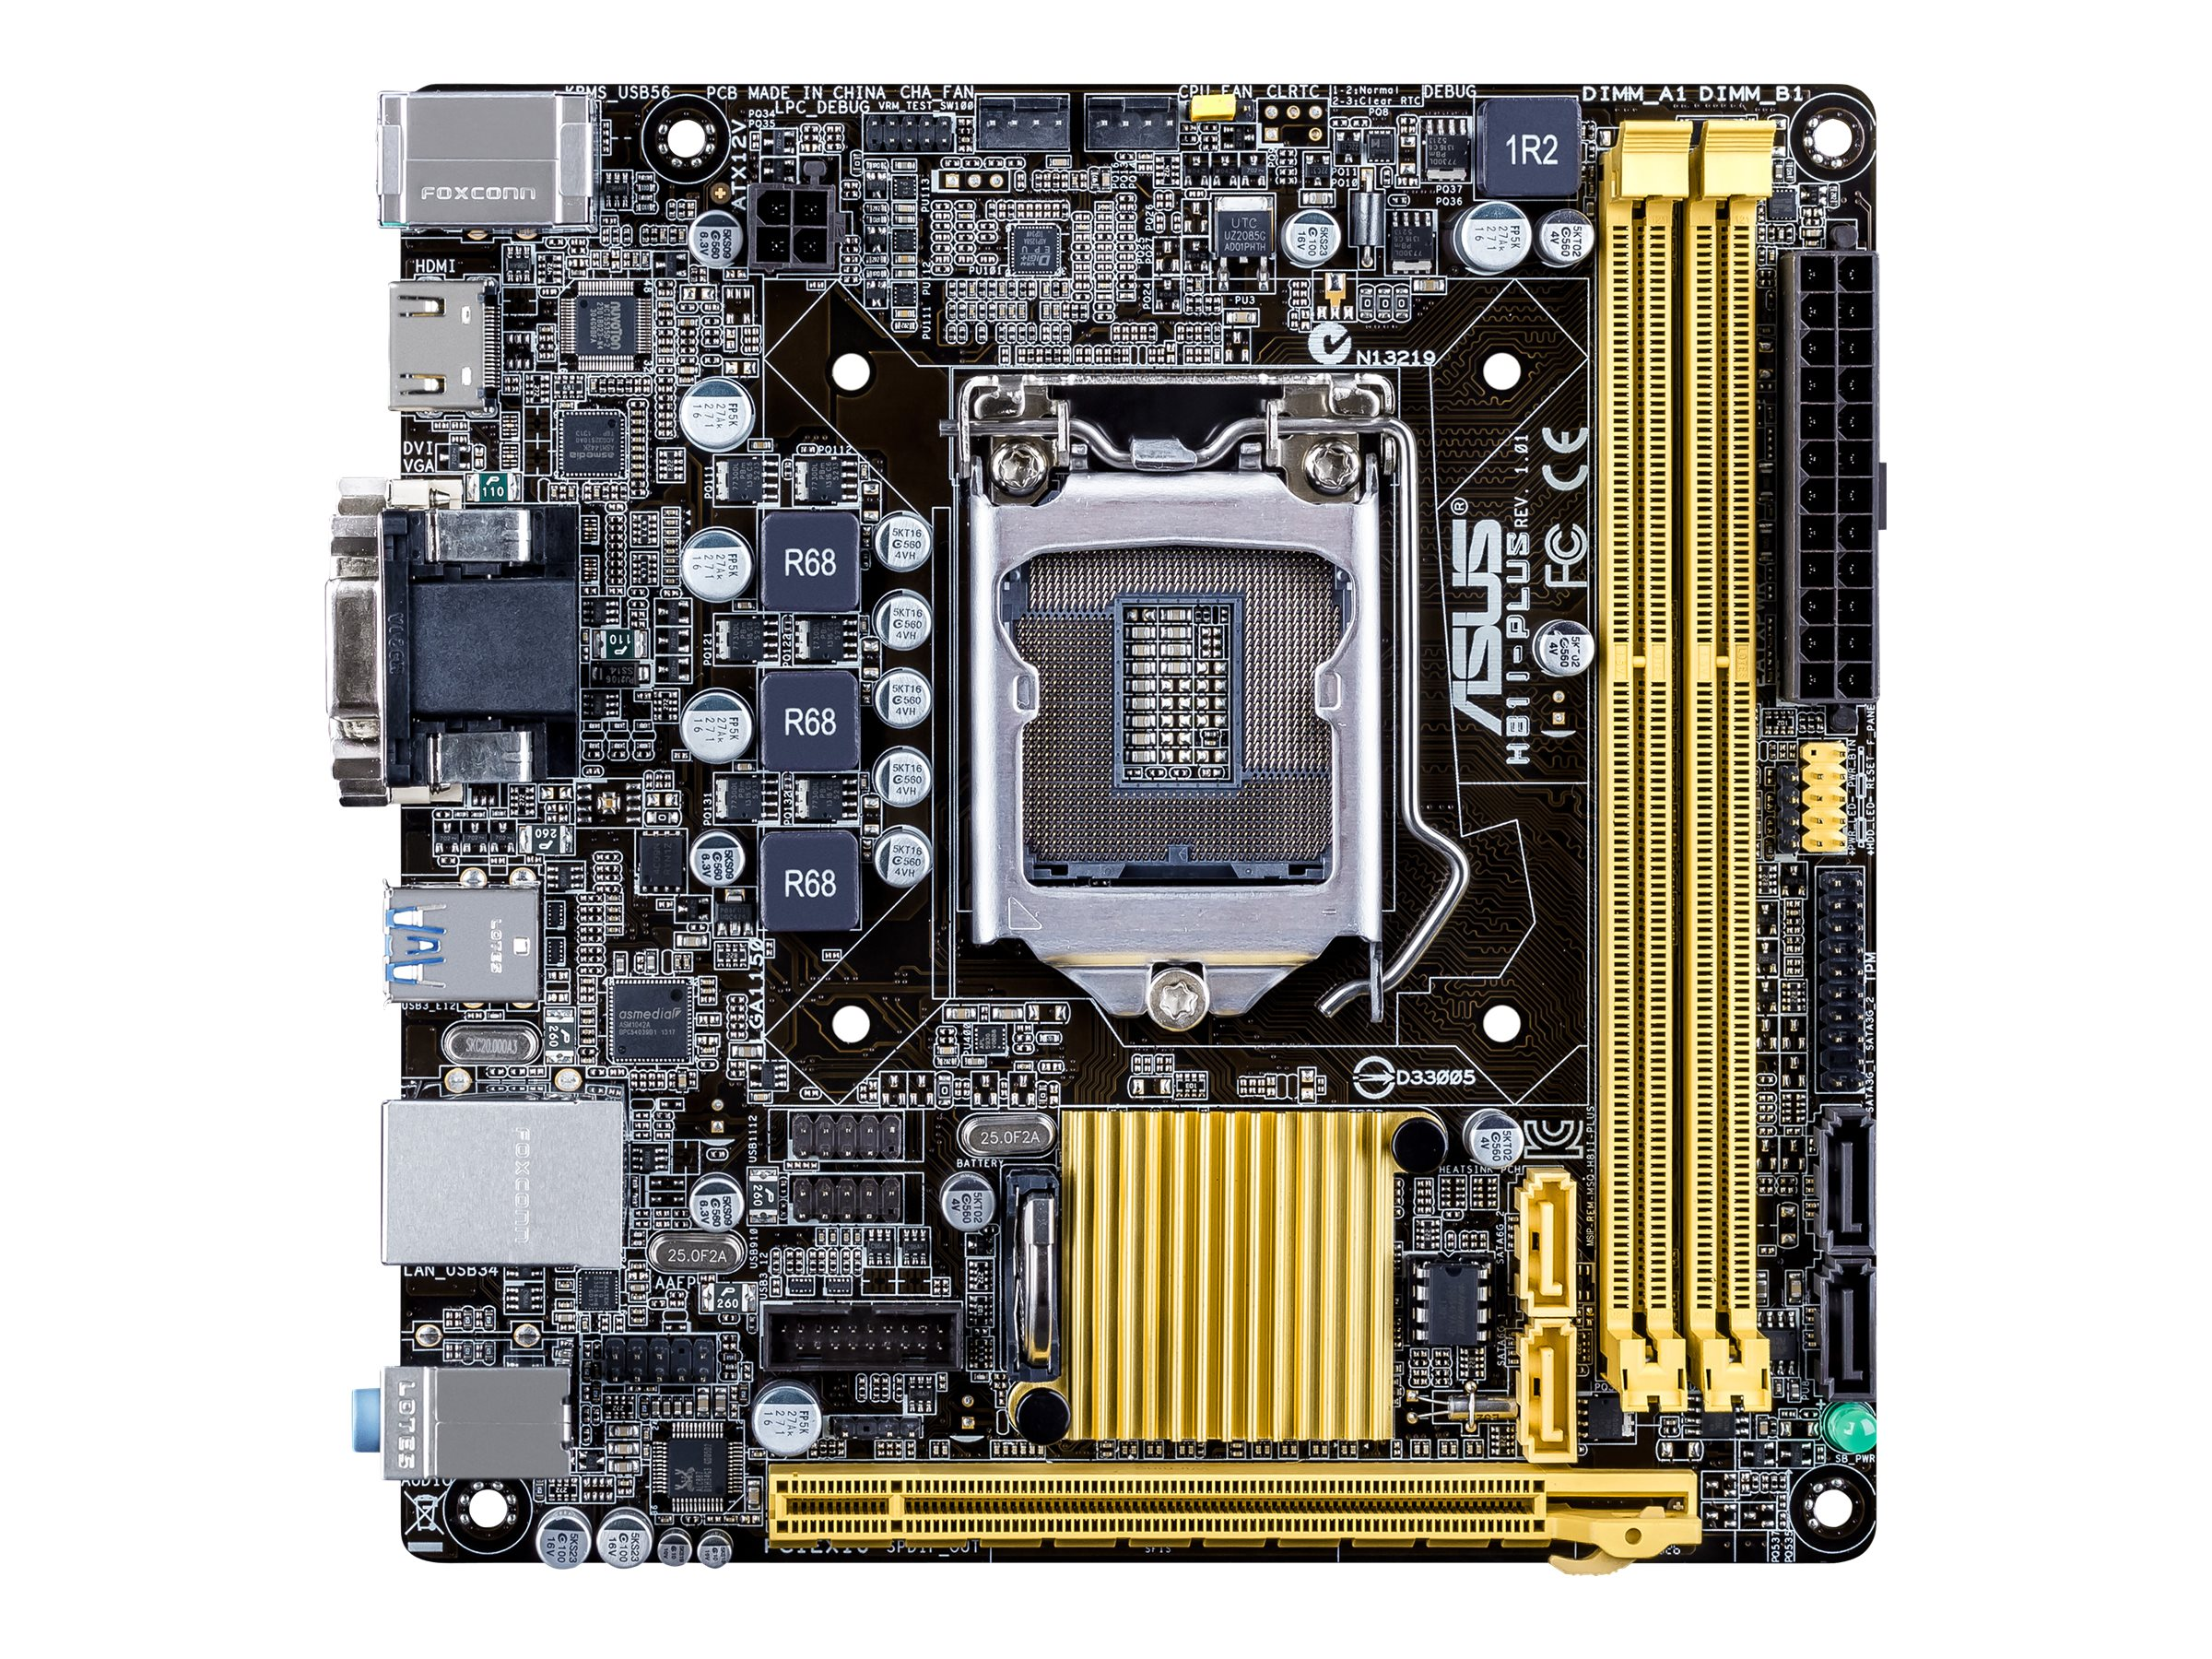 Asus H81I-PLUS Motherboard, Mini-ITX Core i Max. 16GB 4xSATA PCIe 2.0 x16 GigLAN, H81I-PLUS, 16179113, Motherboards